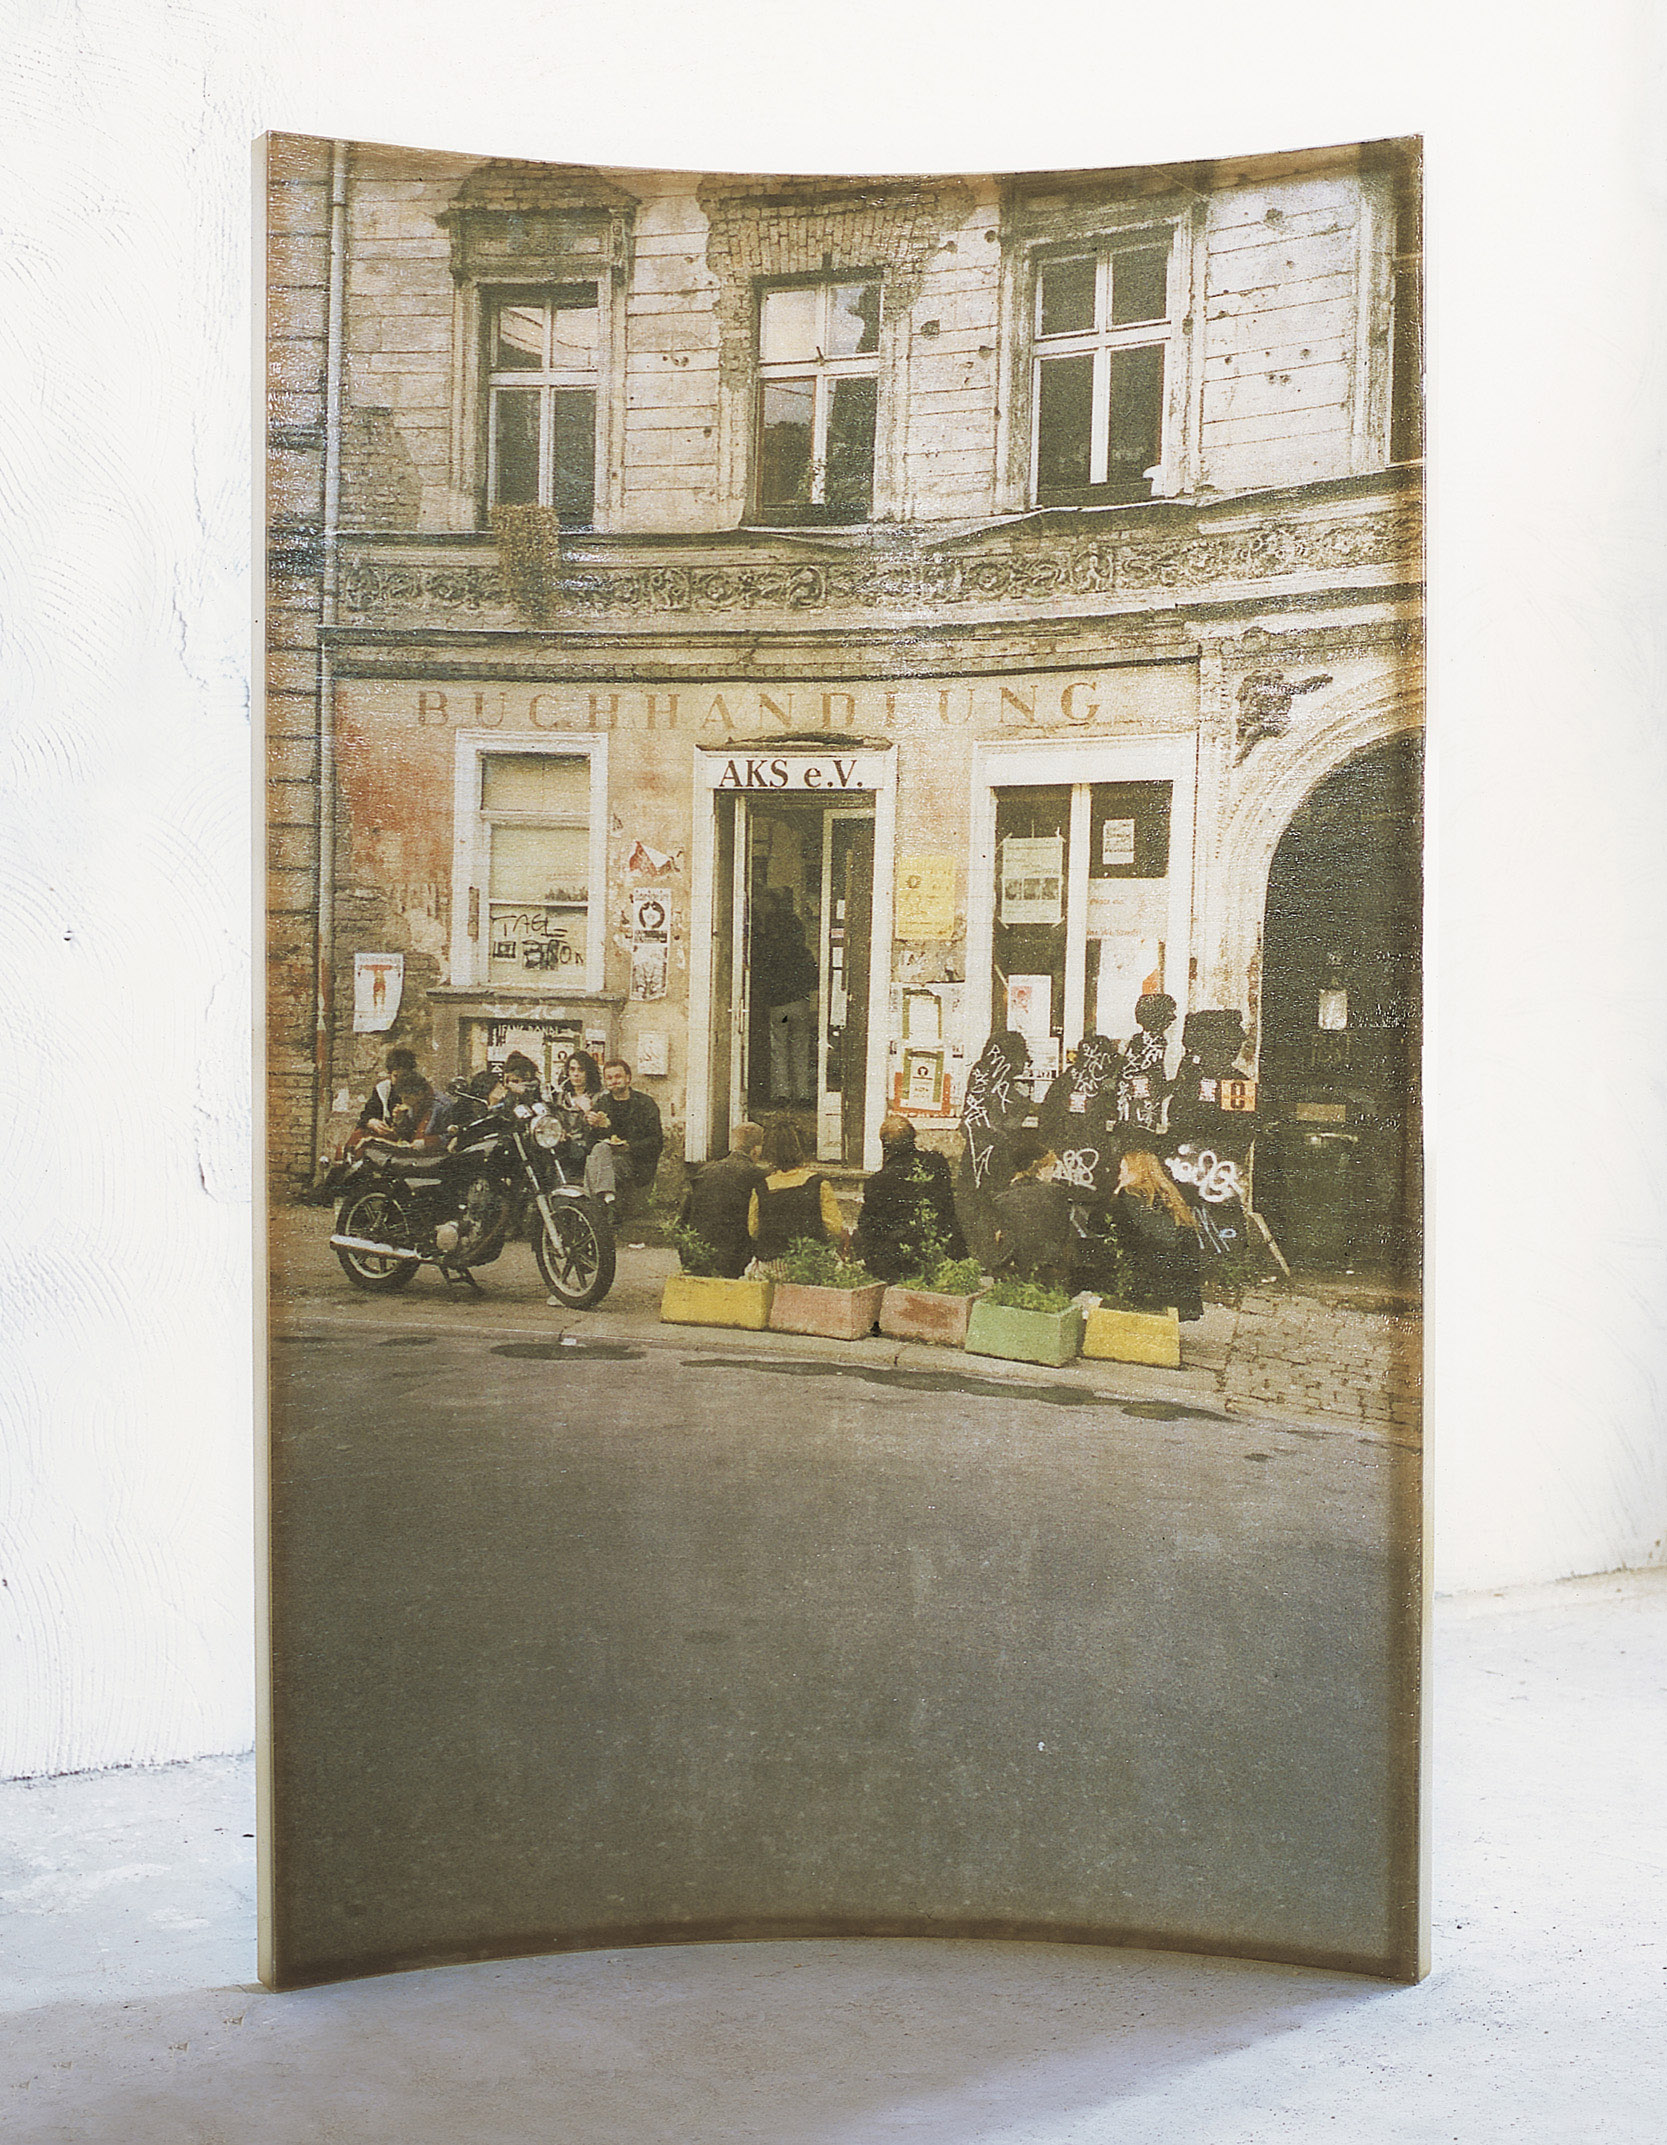 Amador. 'L'home i la ciutat', 2000, polyester resin and fotography, 240 x 163 x 35 cm.